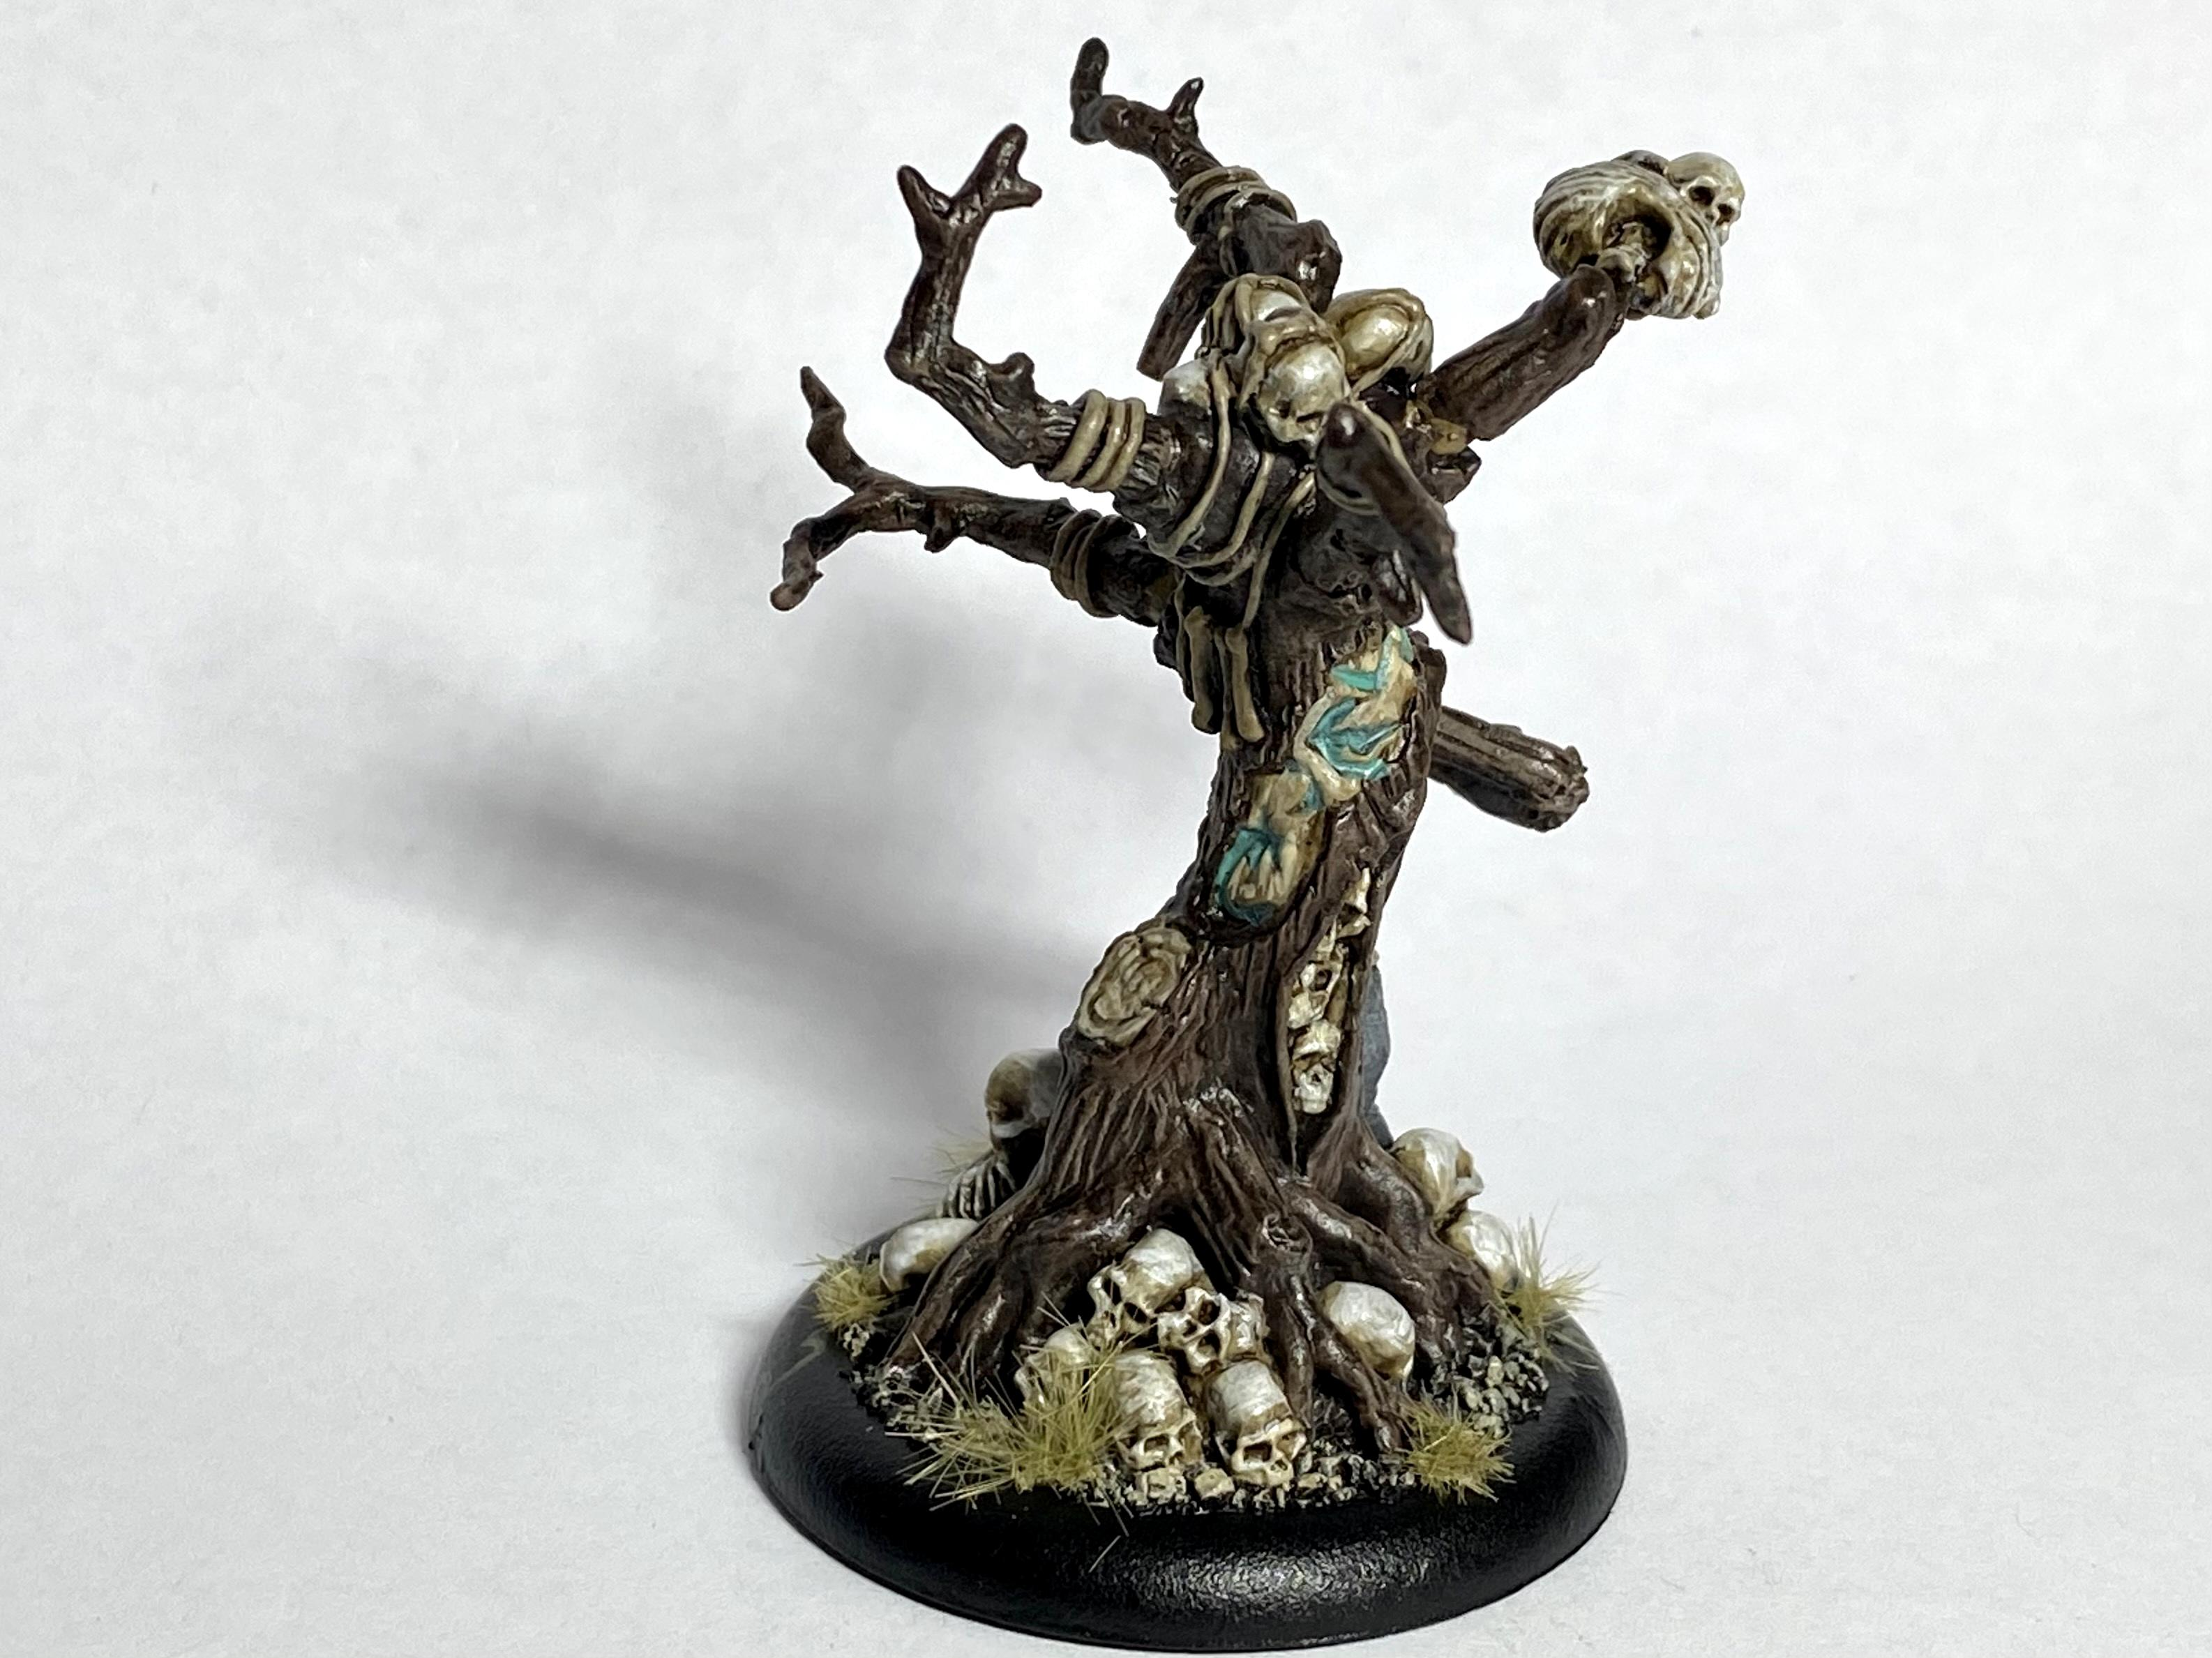 Circle Of Orboros, Hordes, Privateer Press, Solo, Warmachine